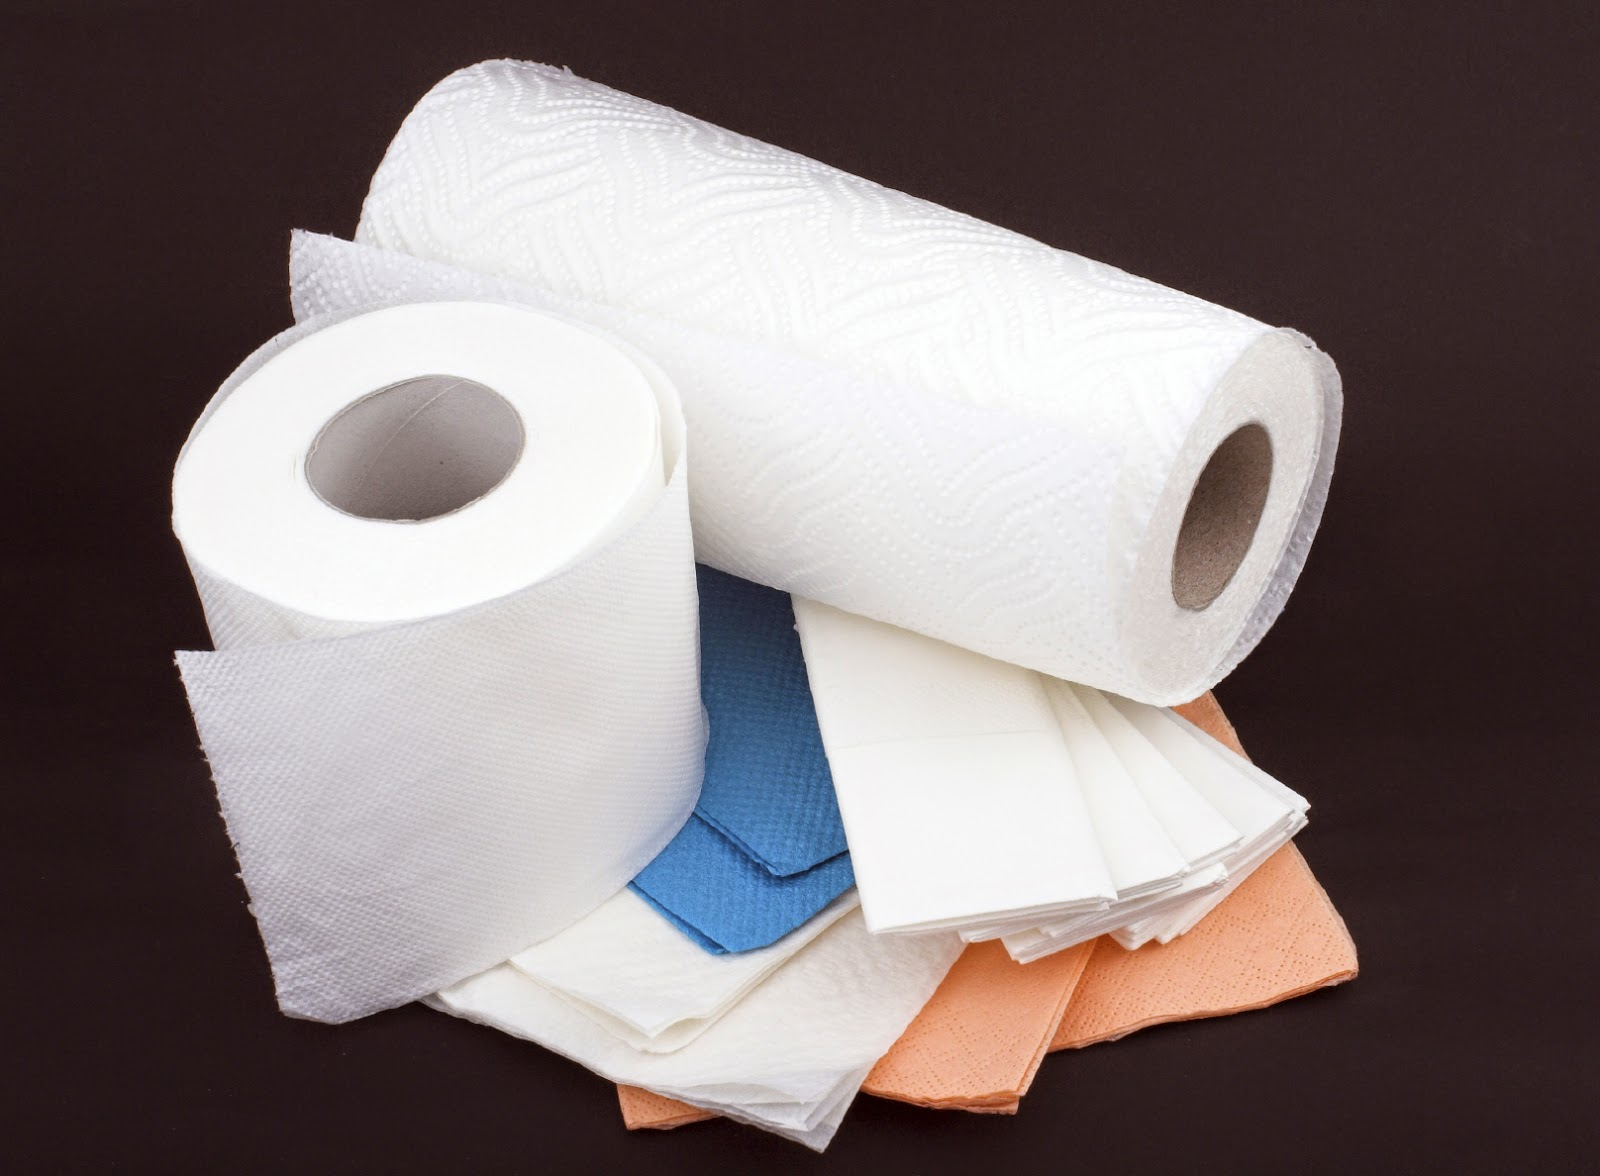 Paper towels and napkins are designed to keep you buying more.